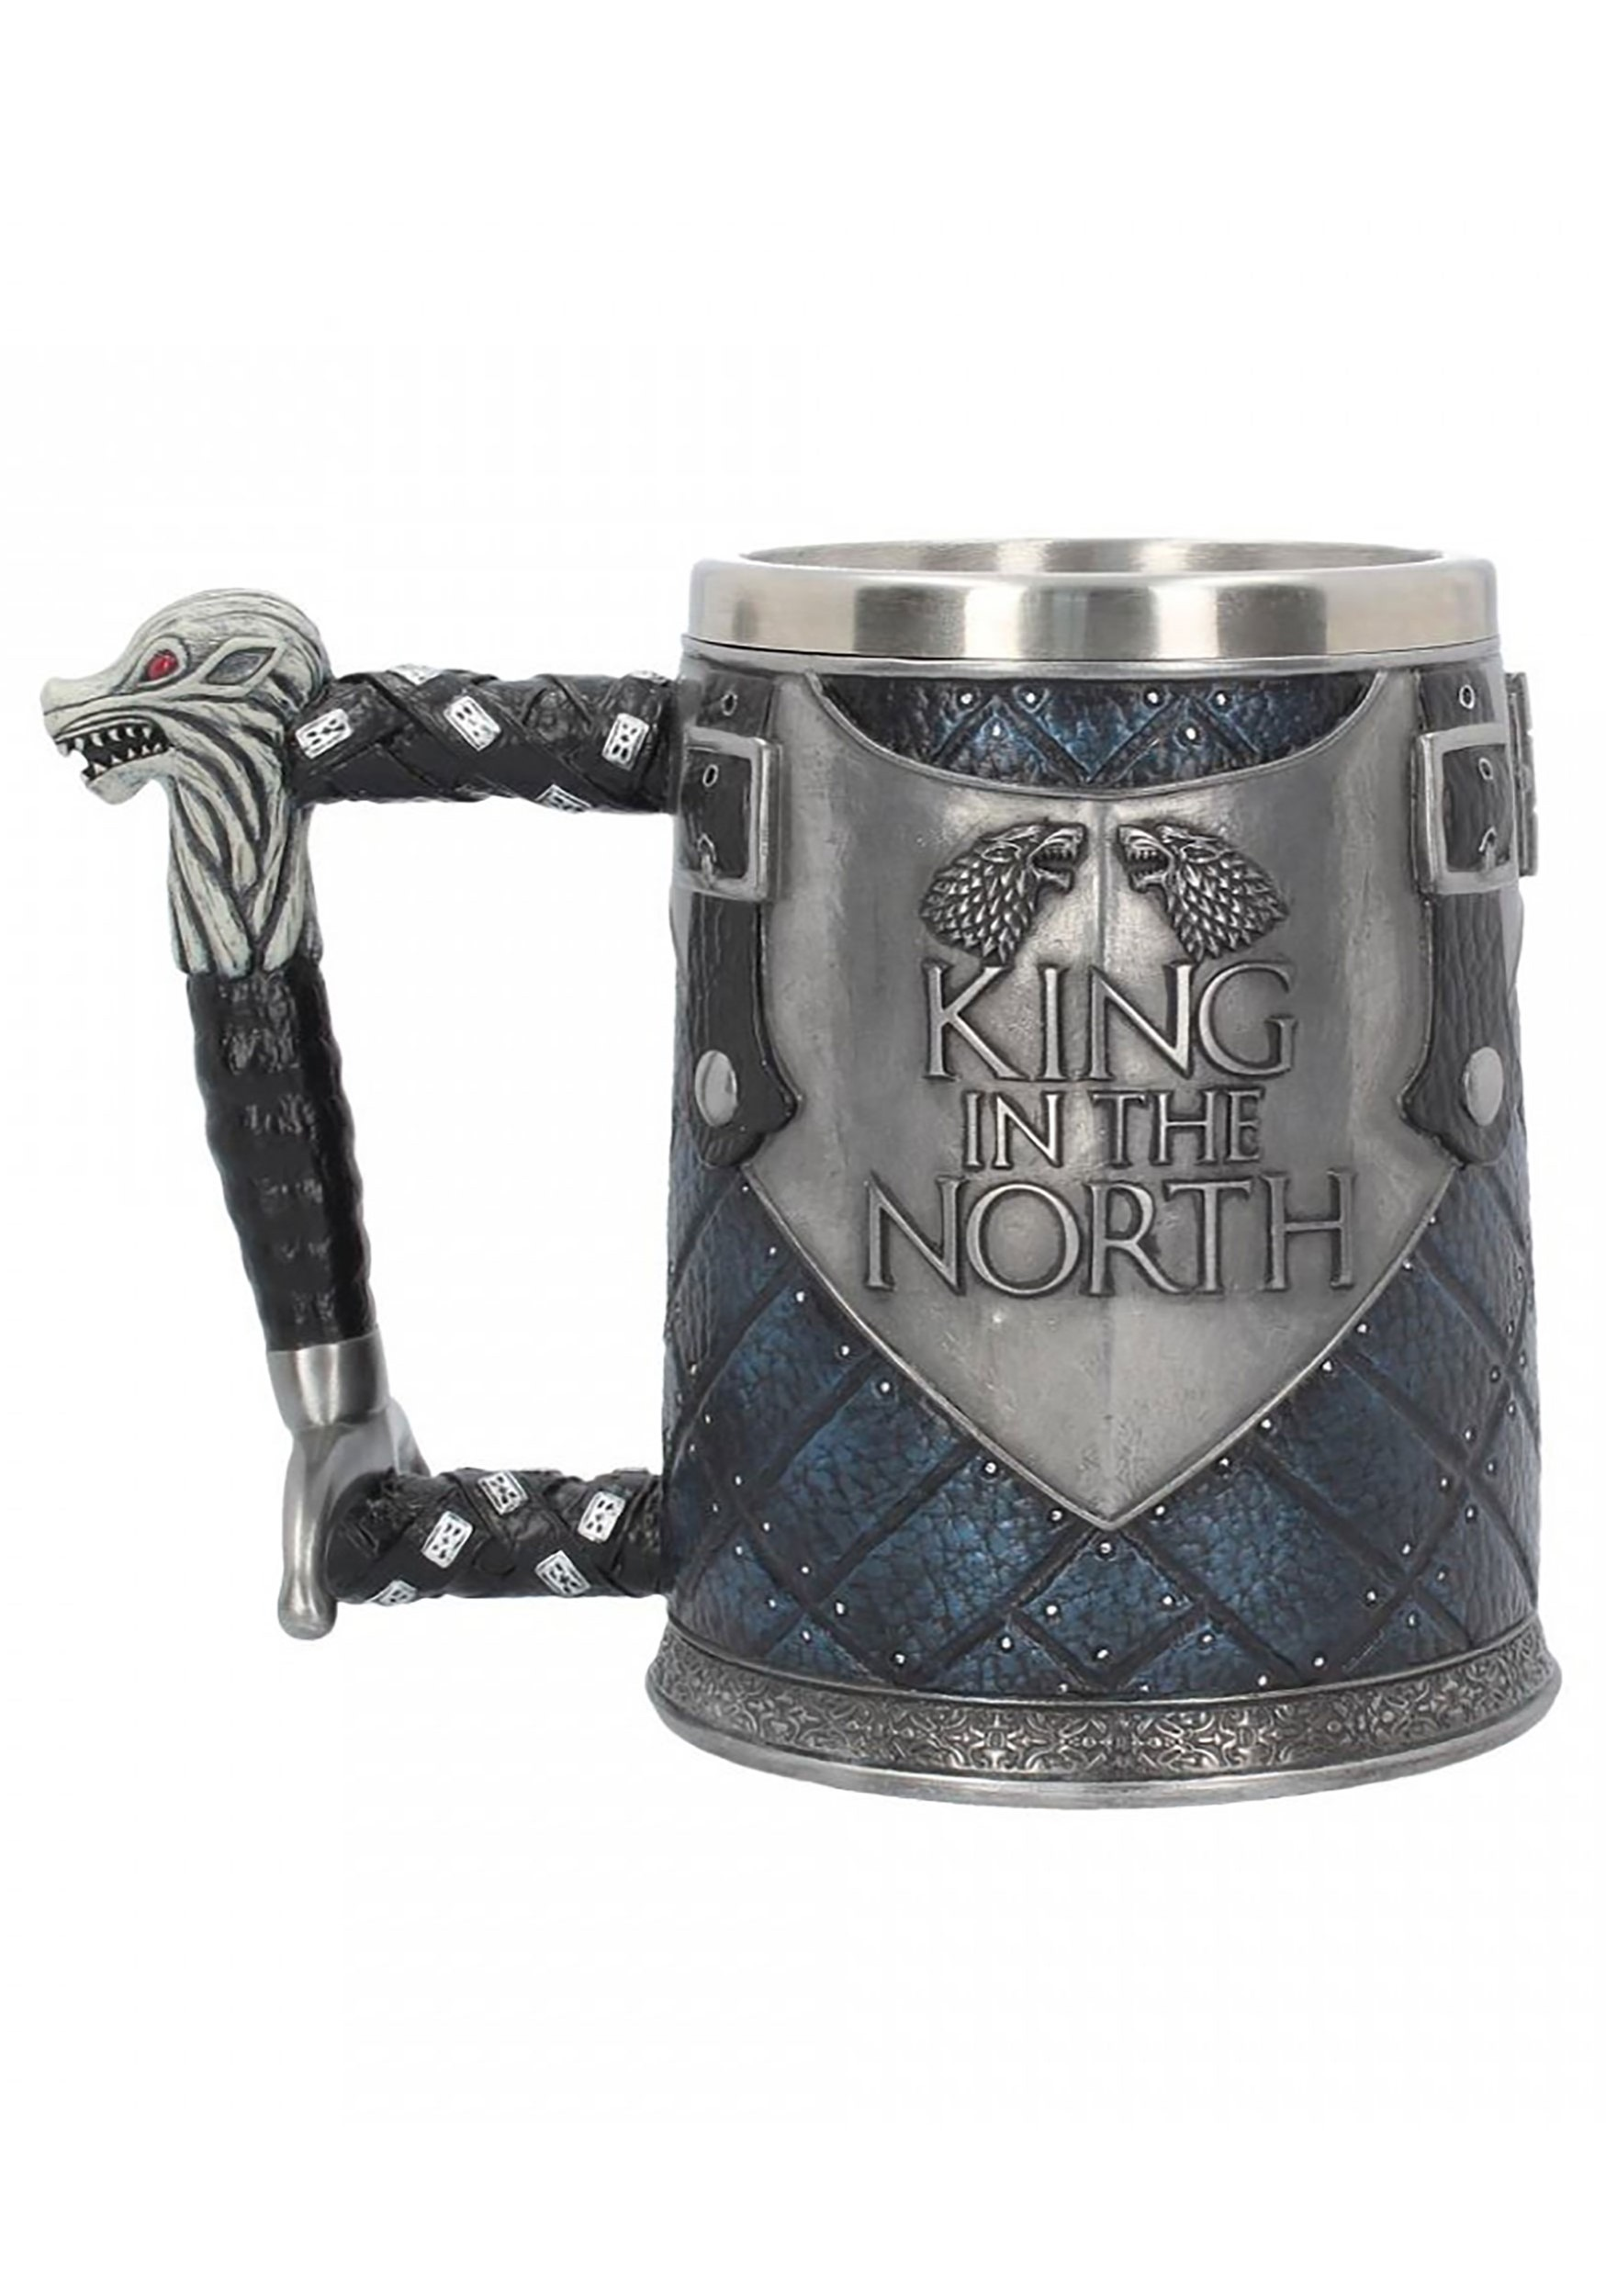 king in the north game of thrones tankard